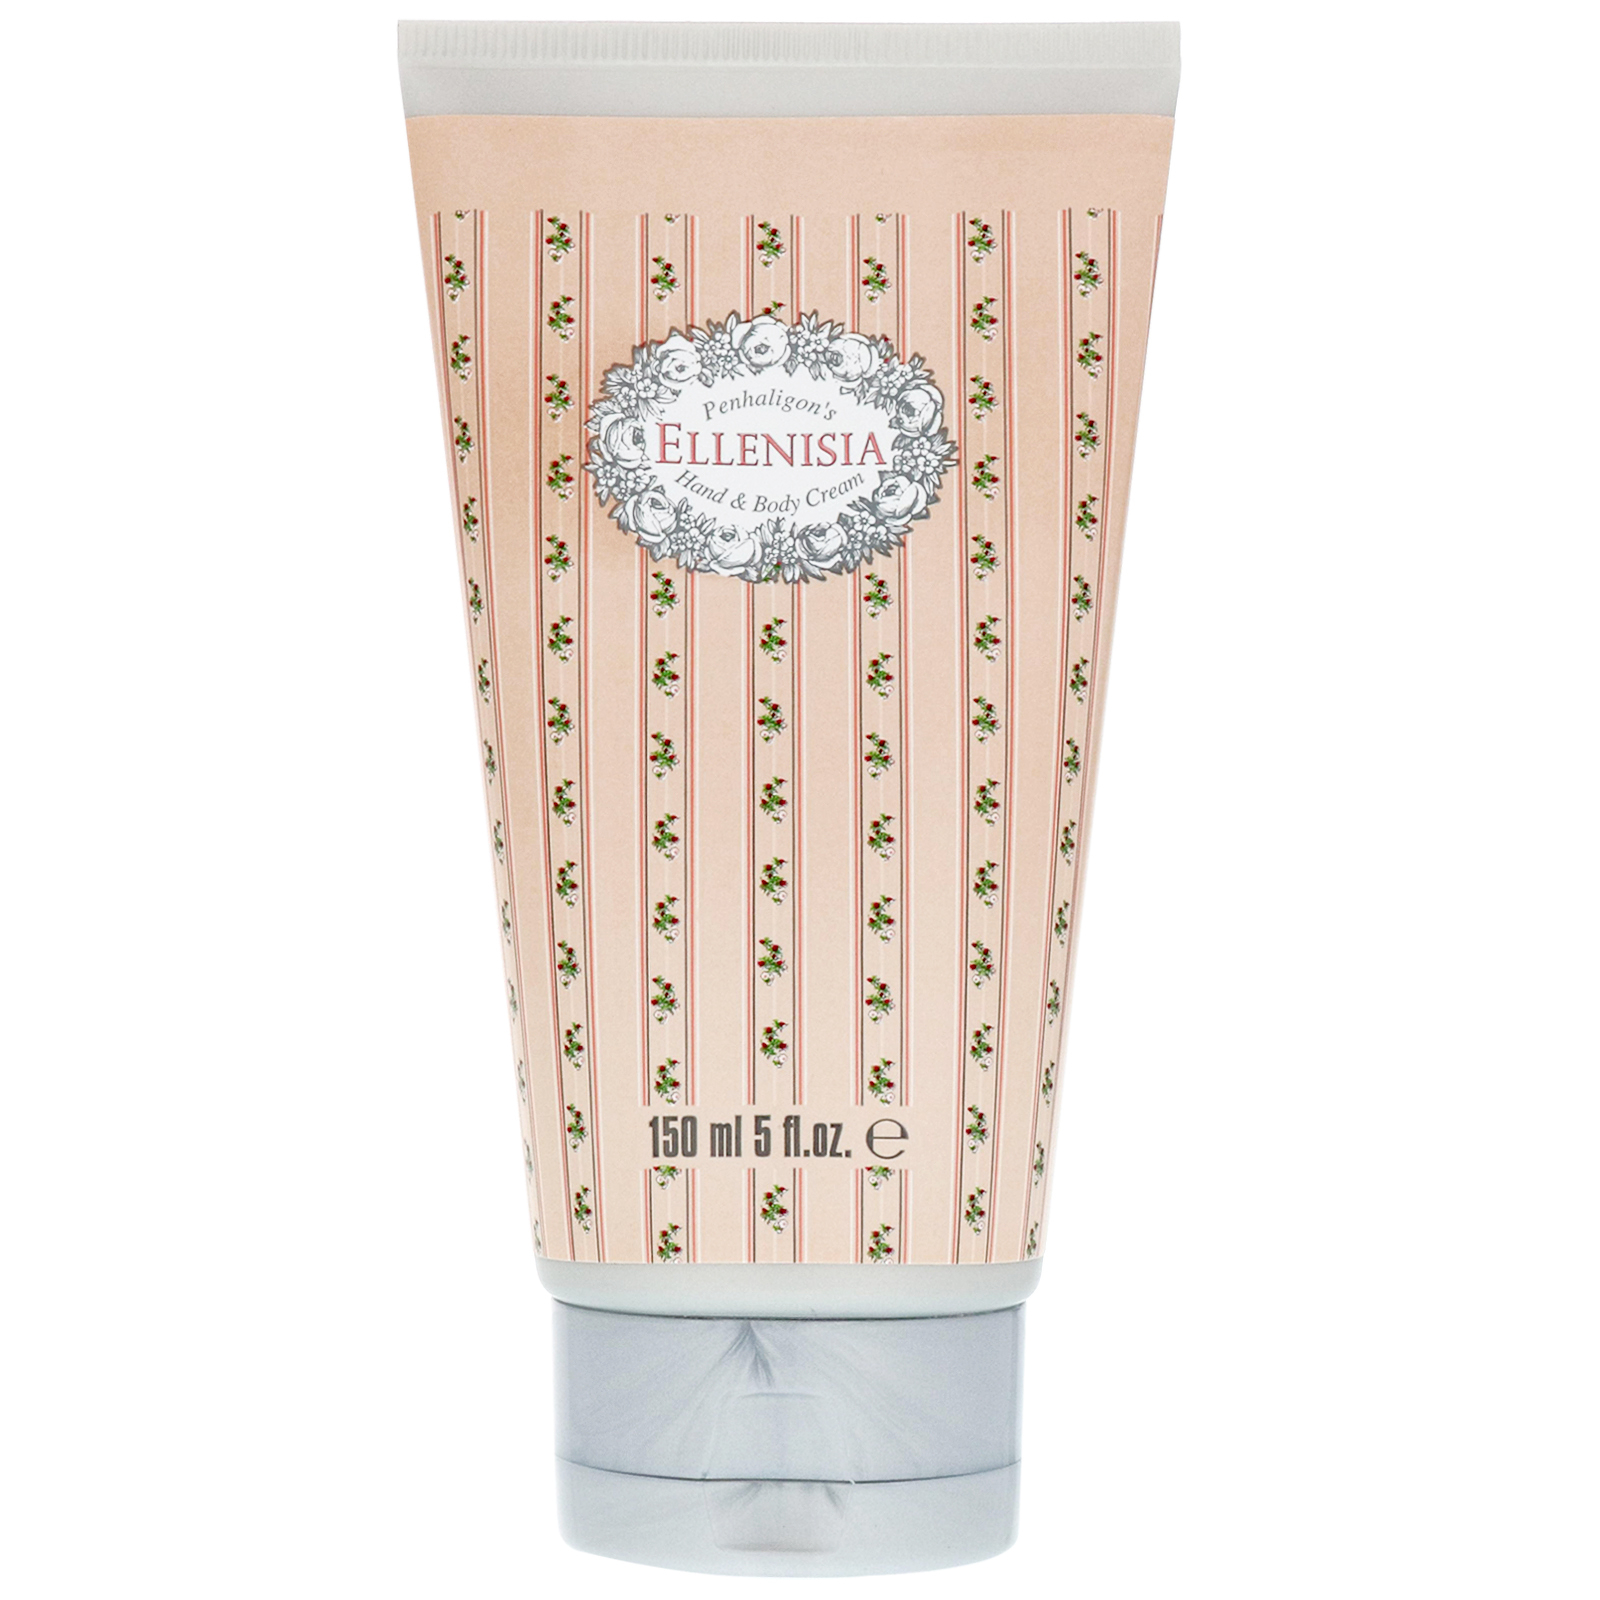 Penhaligon's Ellenisia Hand & Body Cream 150ml / 5 fl.oz.